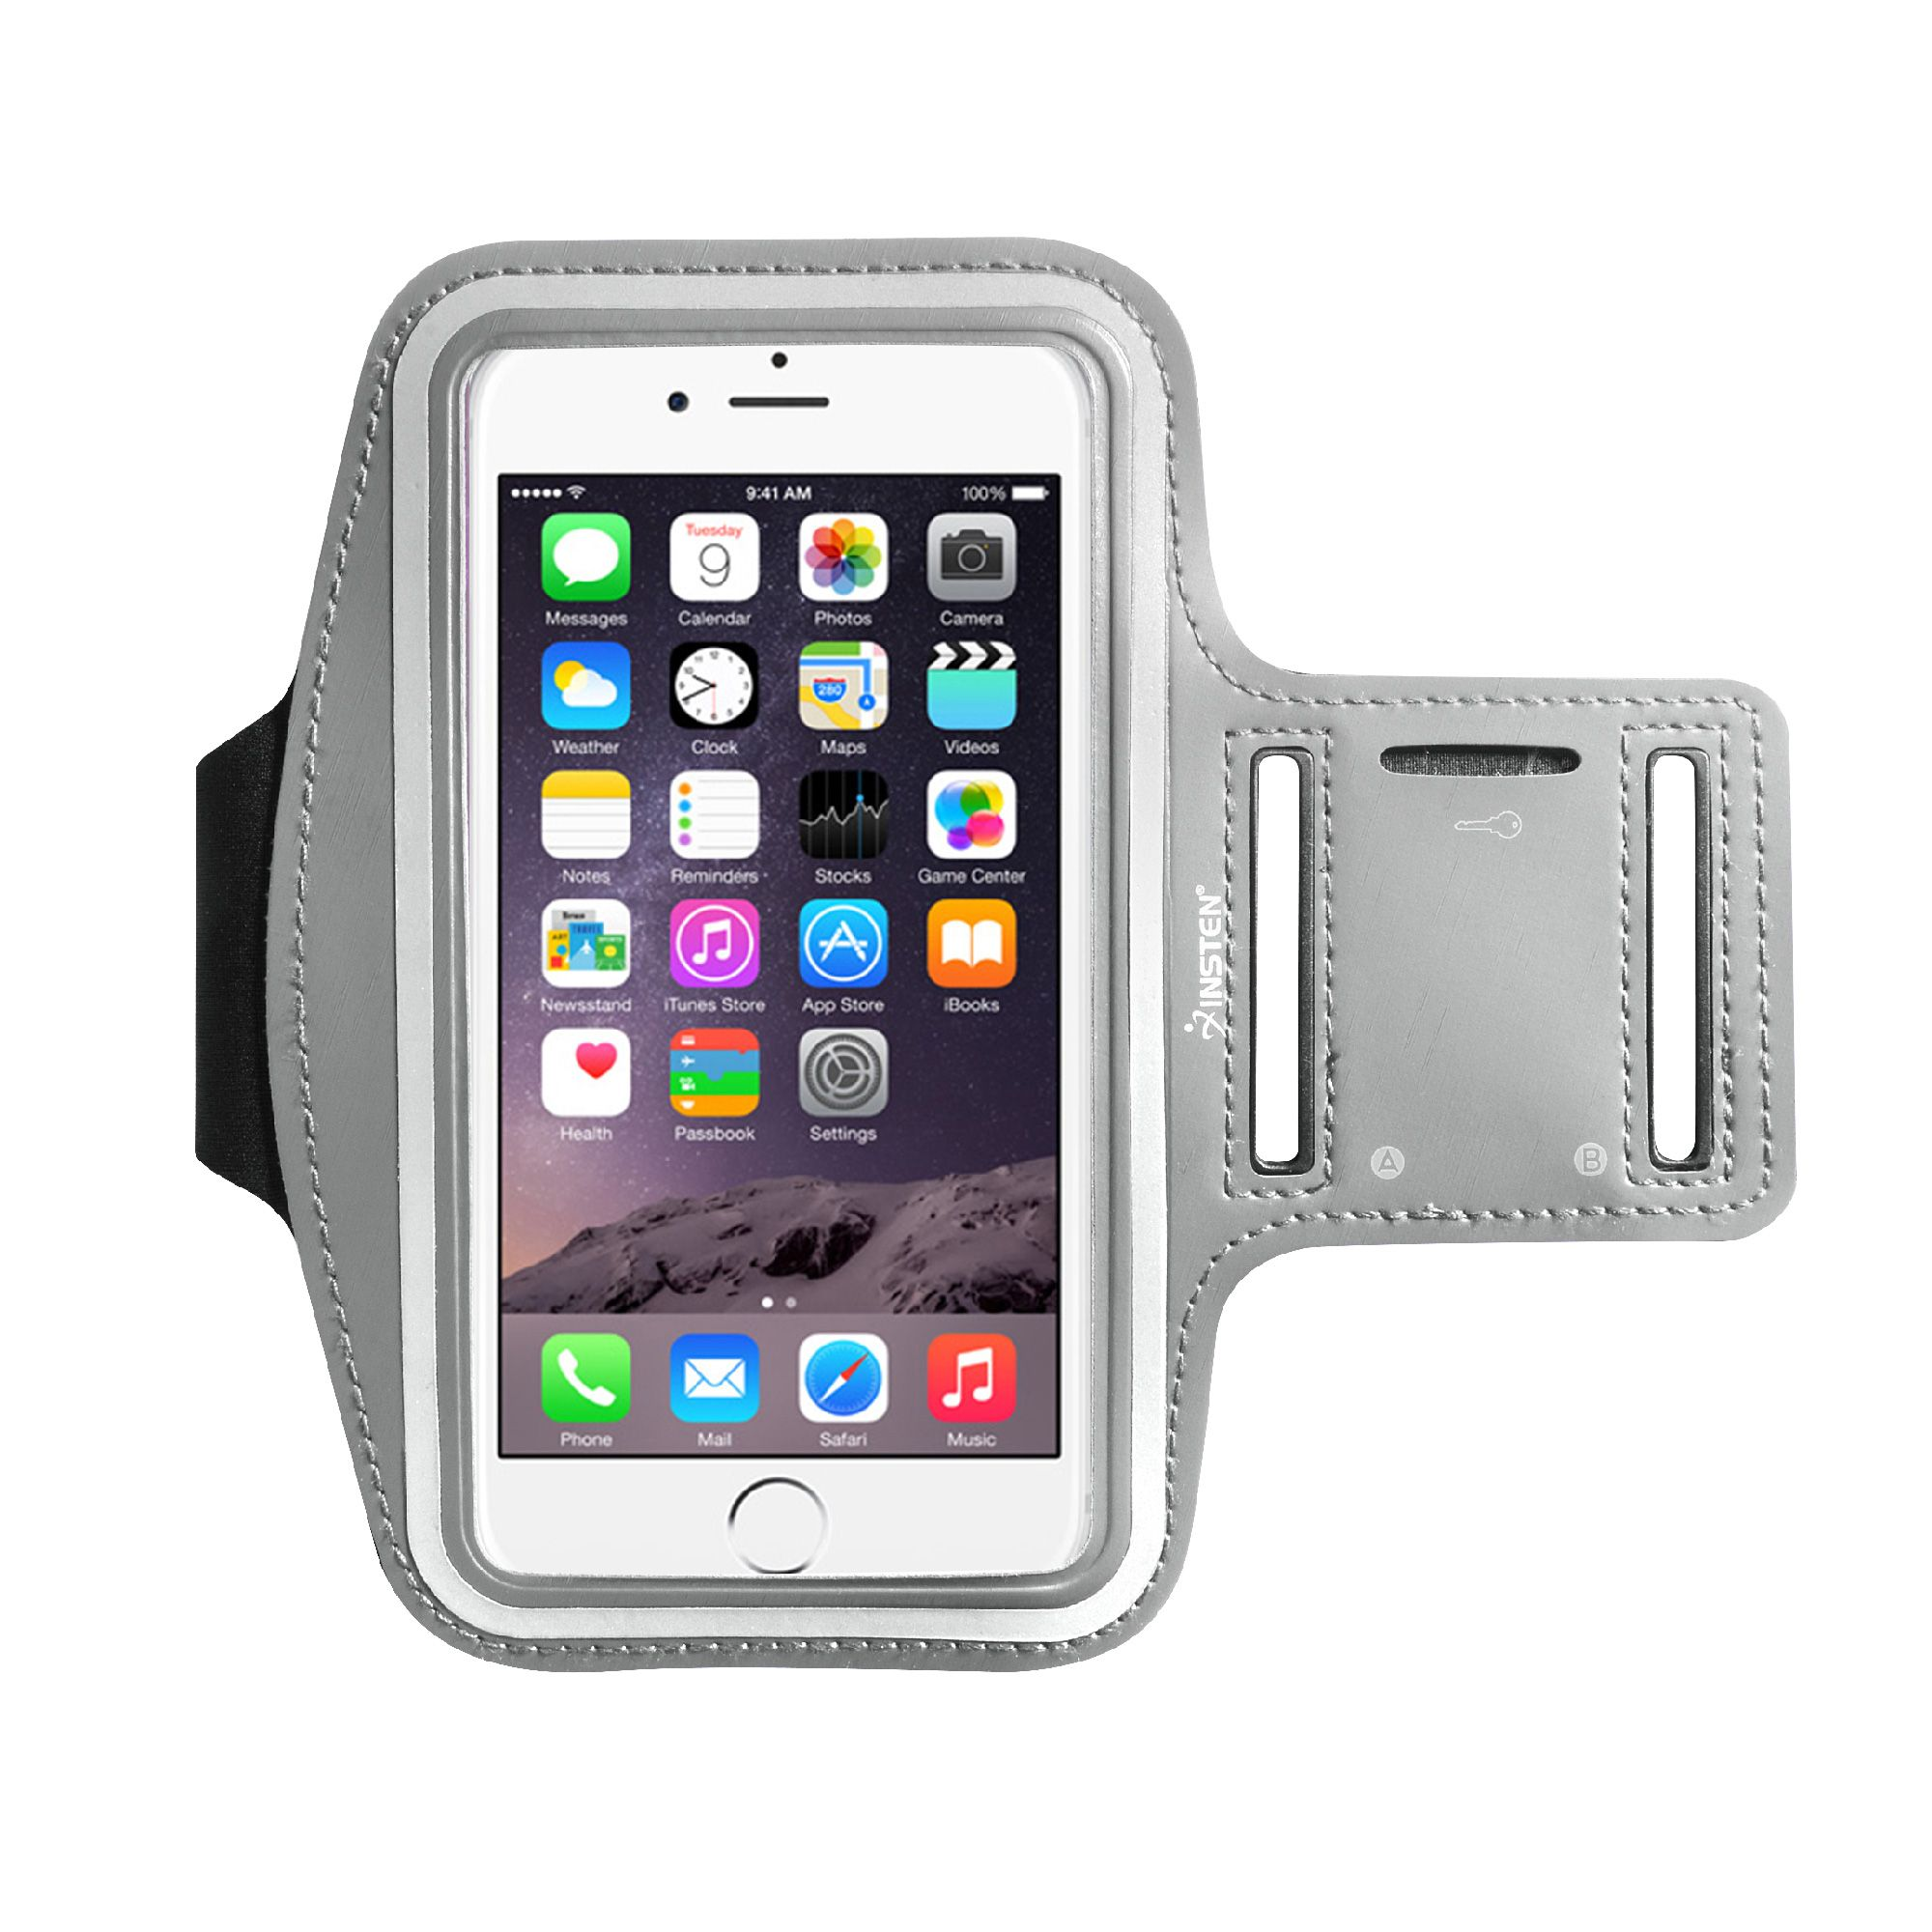 """Insten Universal Sports Armband Sportband Phone Holder Case (6.49"""" x 3.74"""") for iPhone 8 7 Plus 6s 6 X Samsung Galaxy S8 S7 S6 Note 8 5 4 LG G6 V30 Running Biking Workout Gym (with Key Storage slot)"""